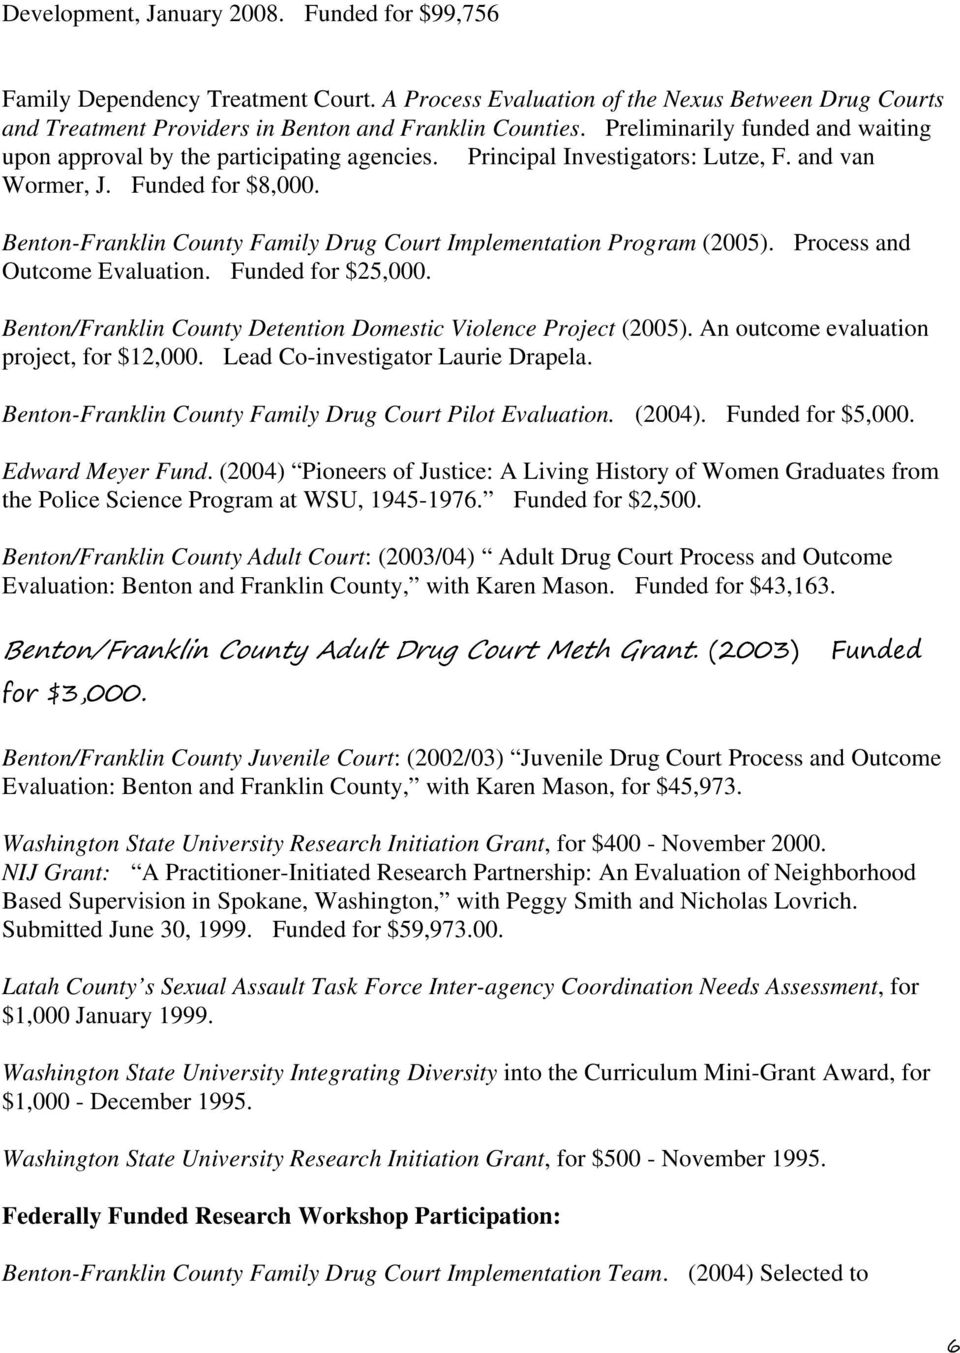 Benton-Franklin County Family Drug Court Implementation Program (2005). Process and Outcome Evaluation. Funded for $25,000. Benton/Franklin County Detention Domestic Violence Project (2005).